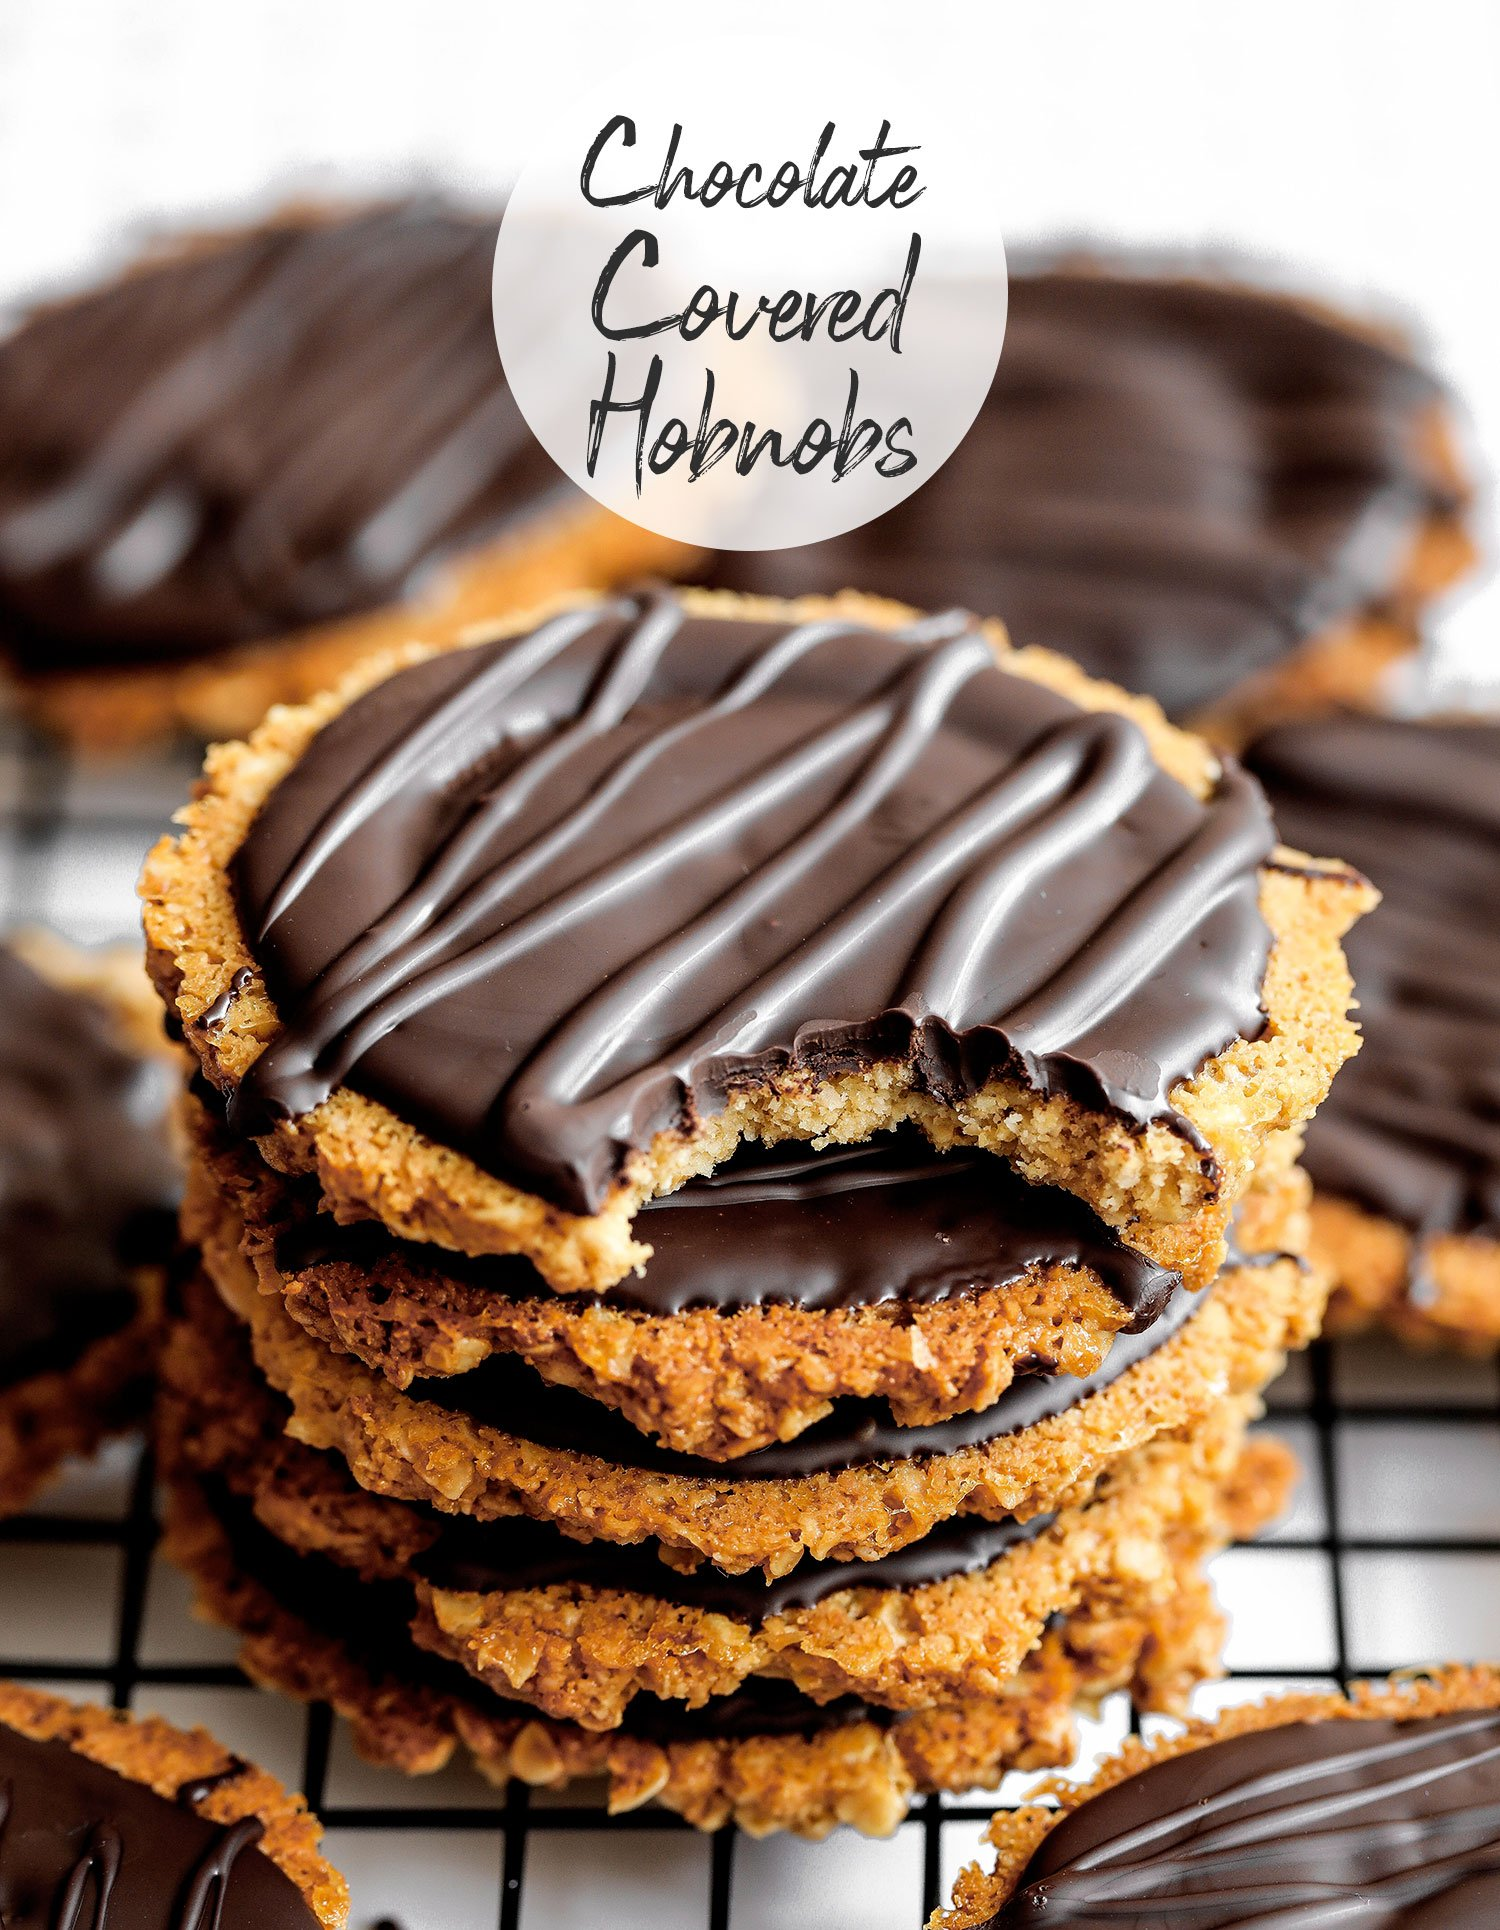 Homemade Chocolate Hobnobs (Vegan Gluten-free)